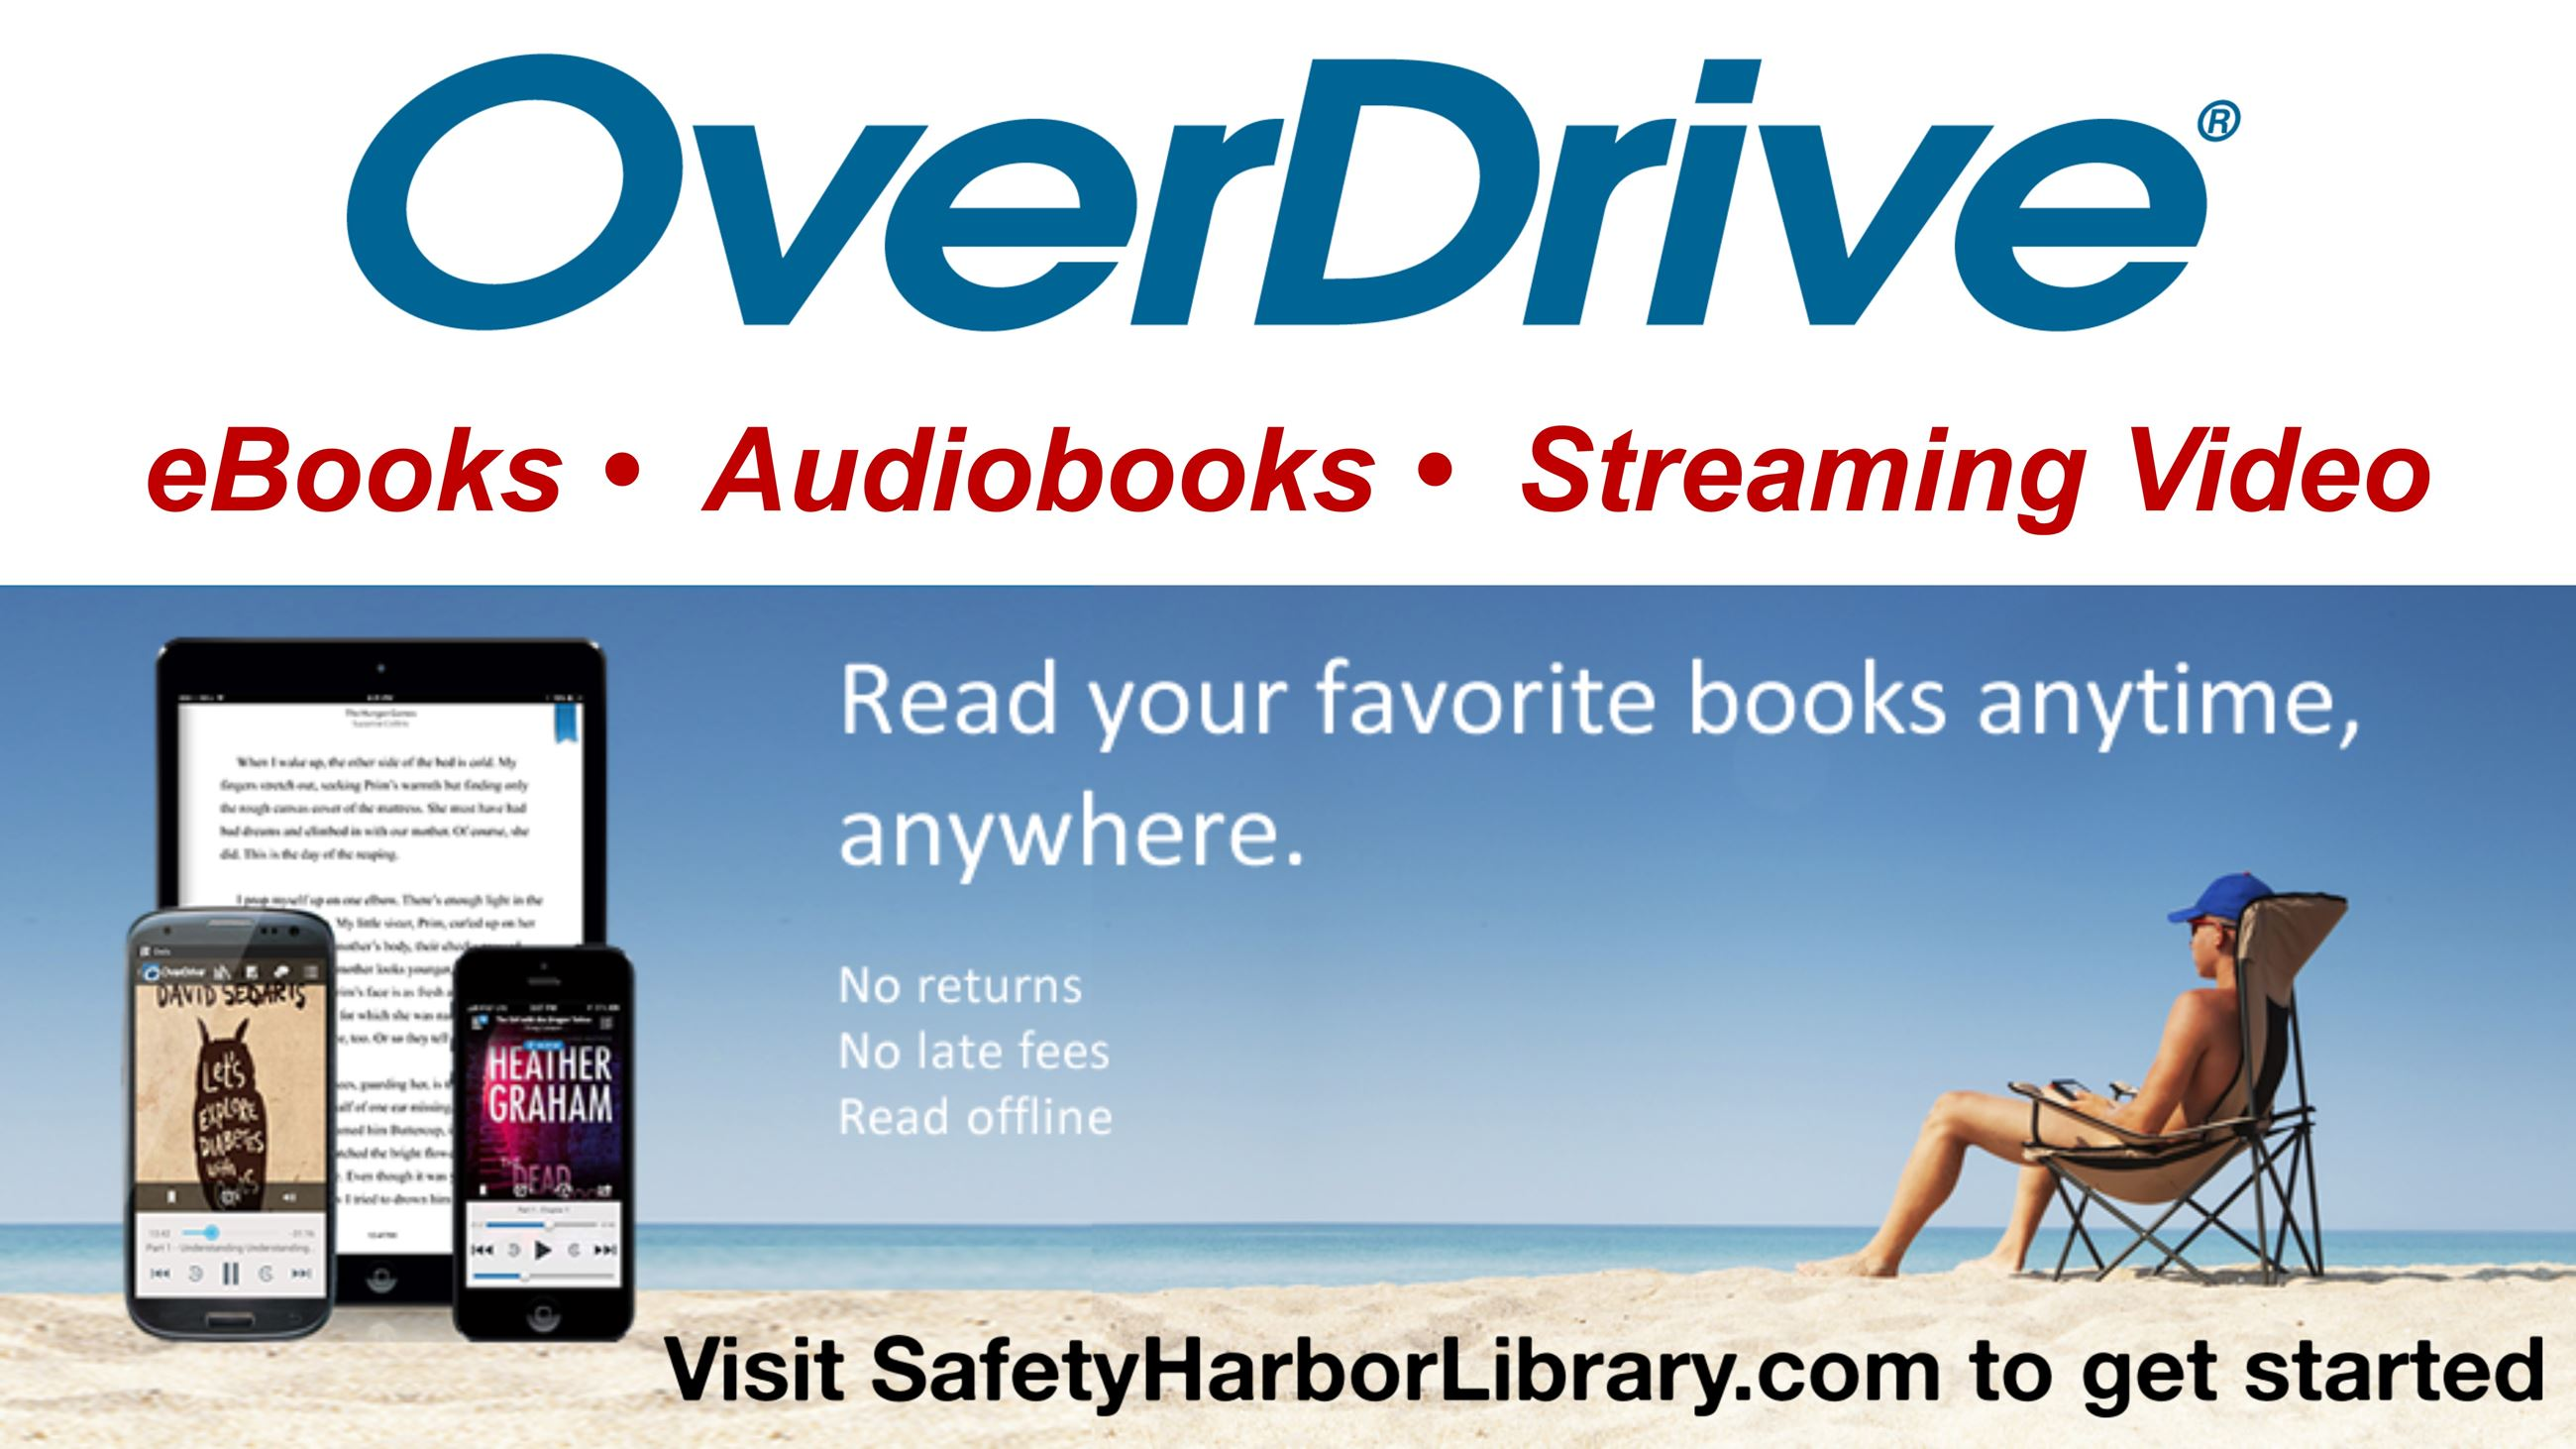 Overdrive - eBooks, Audiobooks, Streaming Video